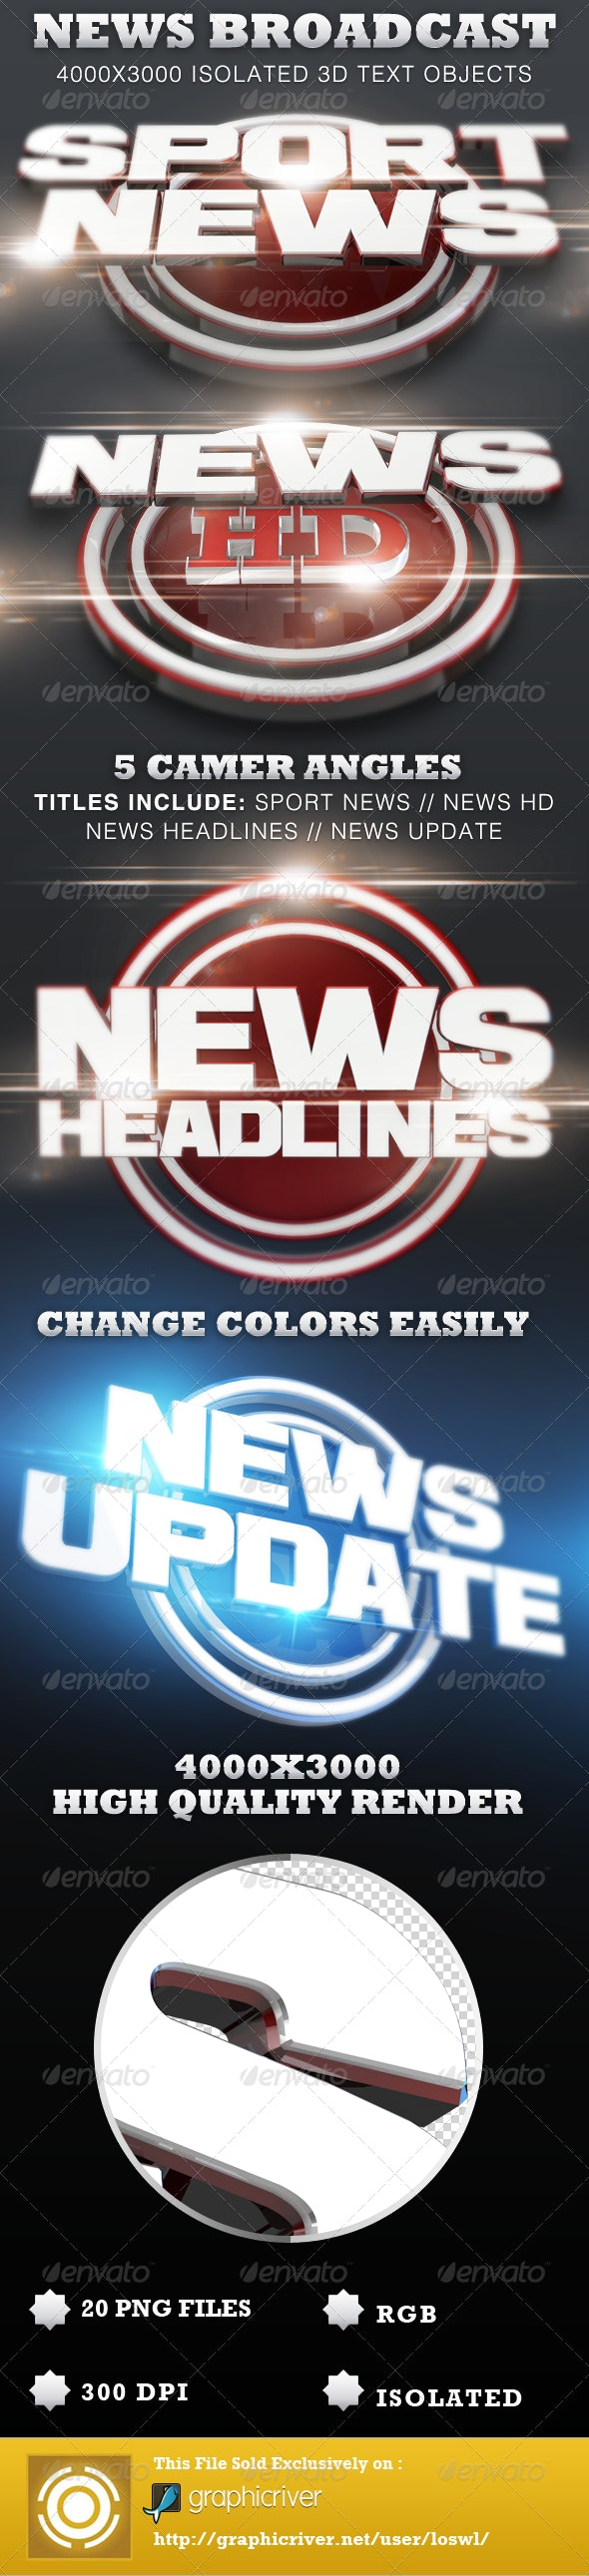 News Broadcast Isolated 3D Text Titles - Text 3D Renders